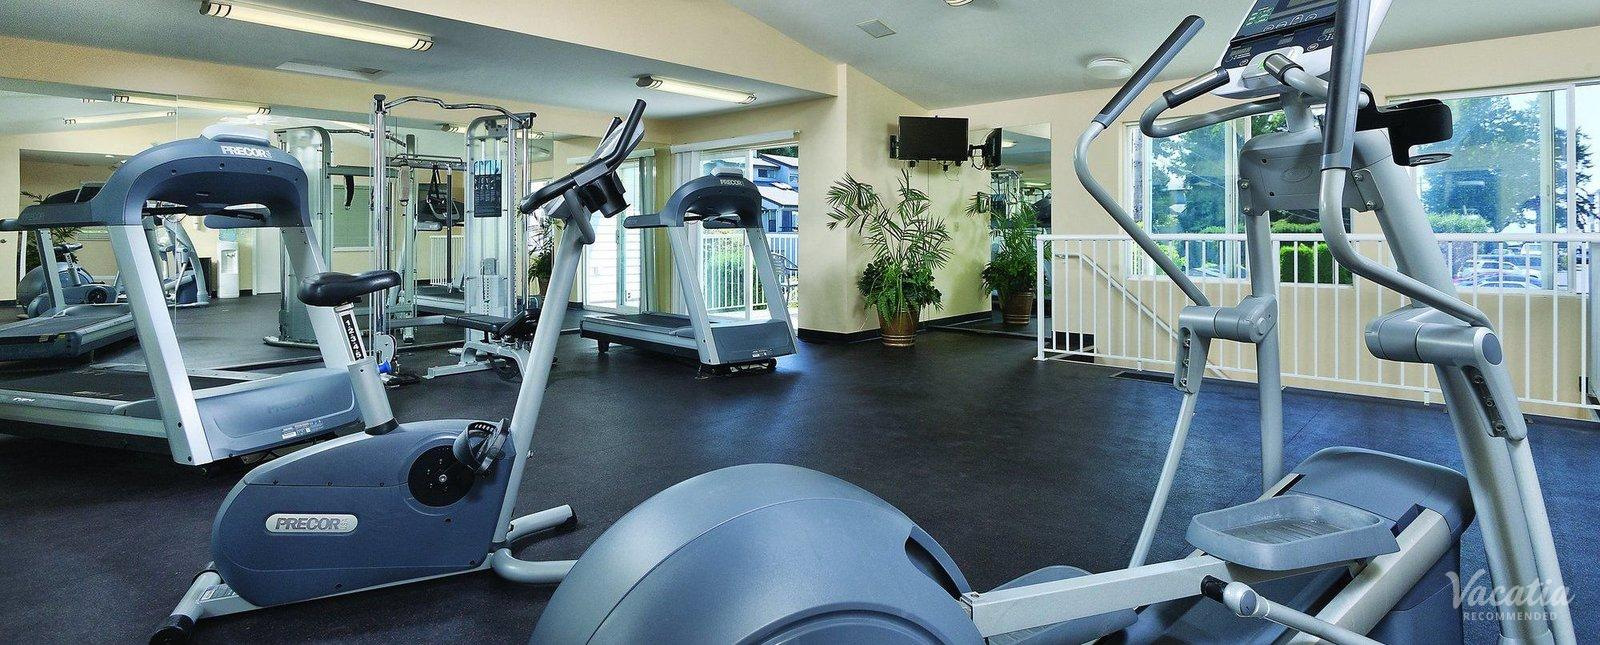 WorldMark Birch Bay Fitness Center